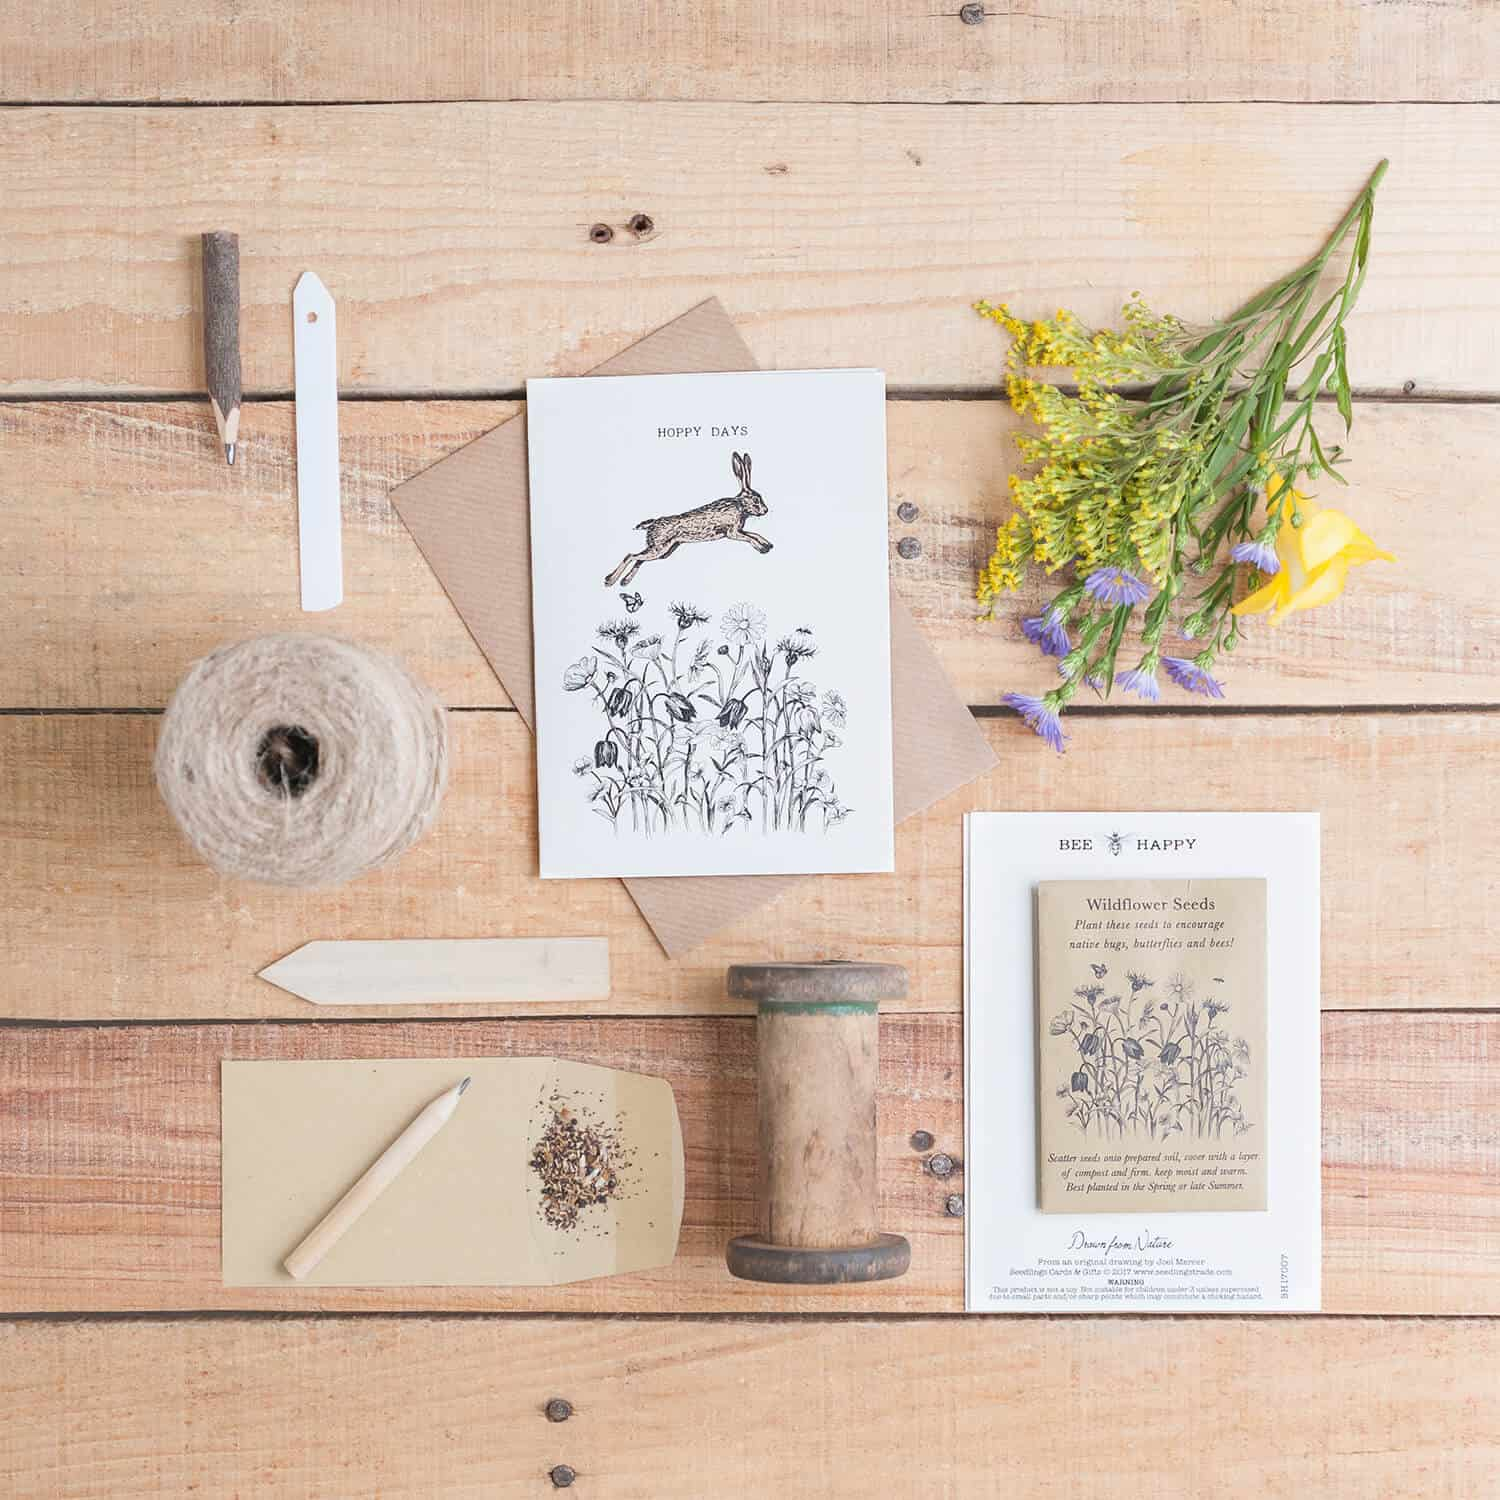 Flatlay product photography for greetings card and gift designer Sarah-jayne Mercer